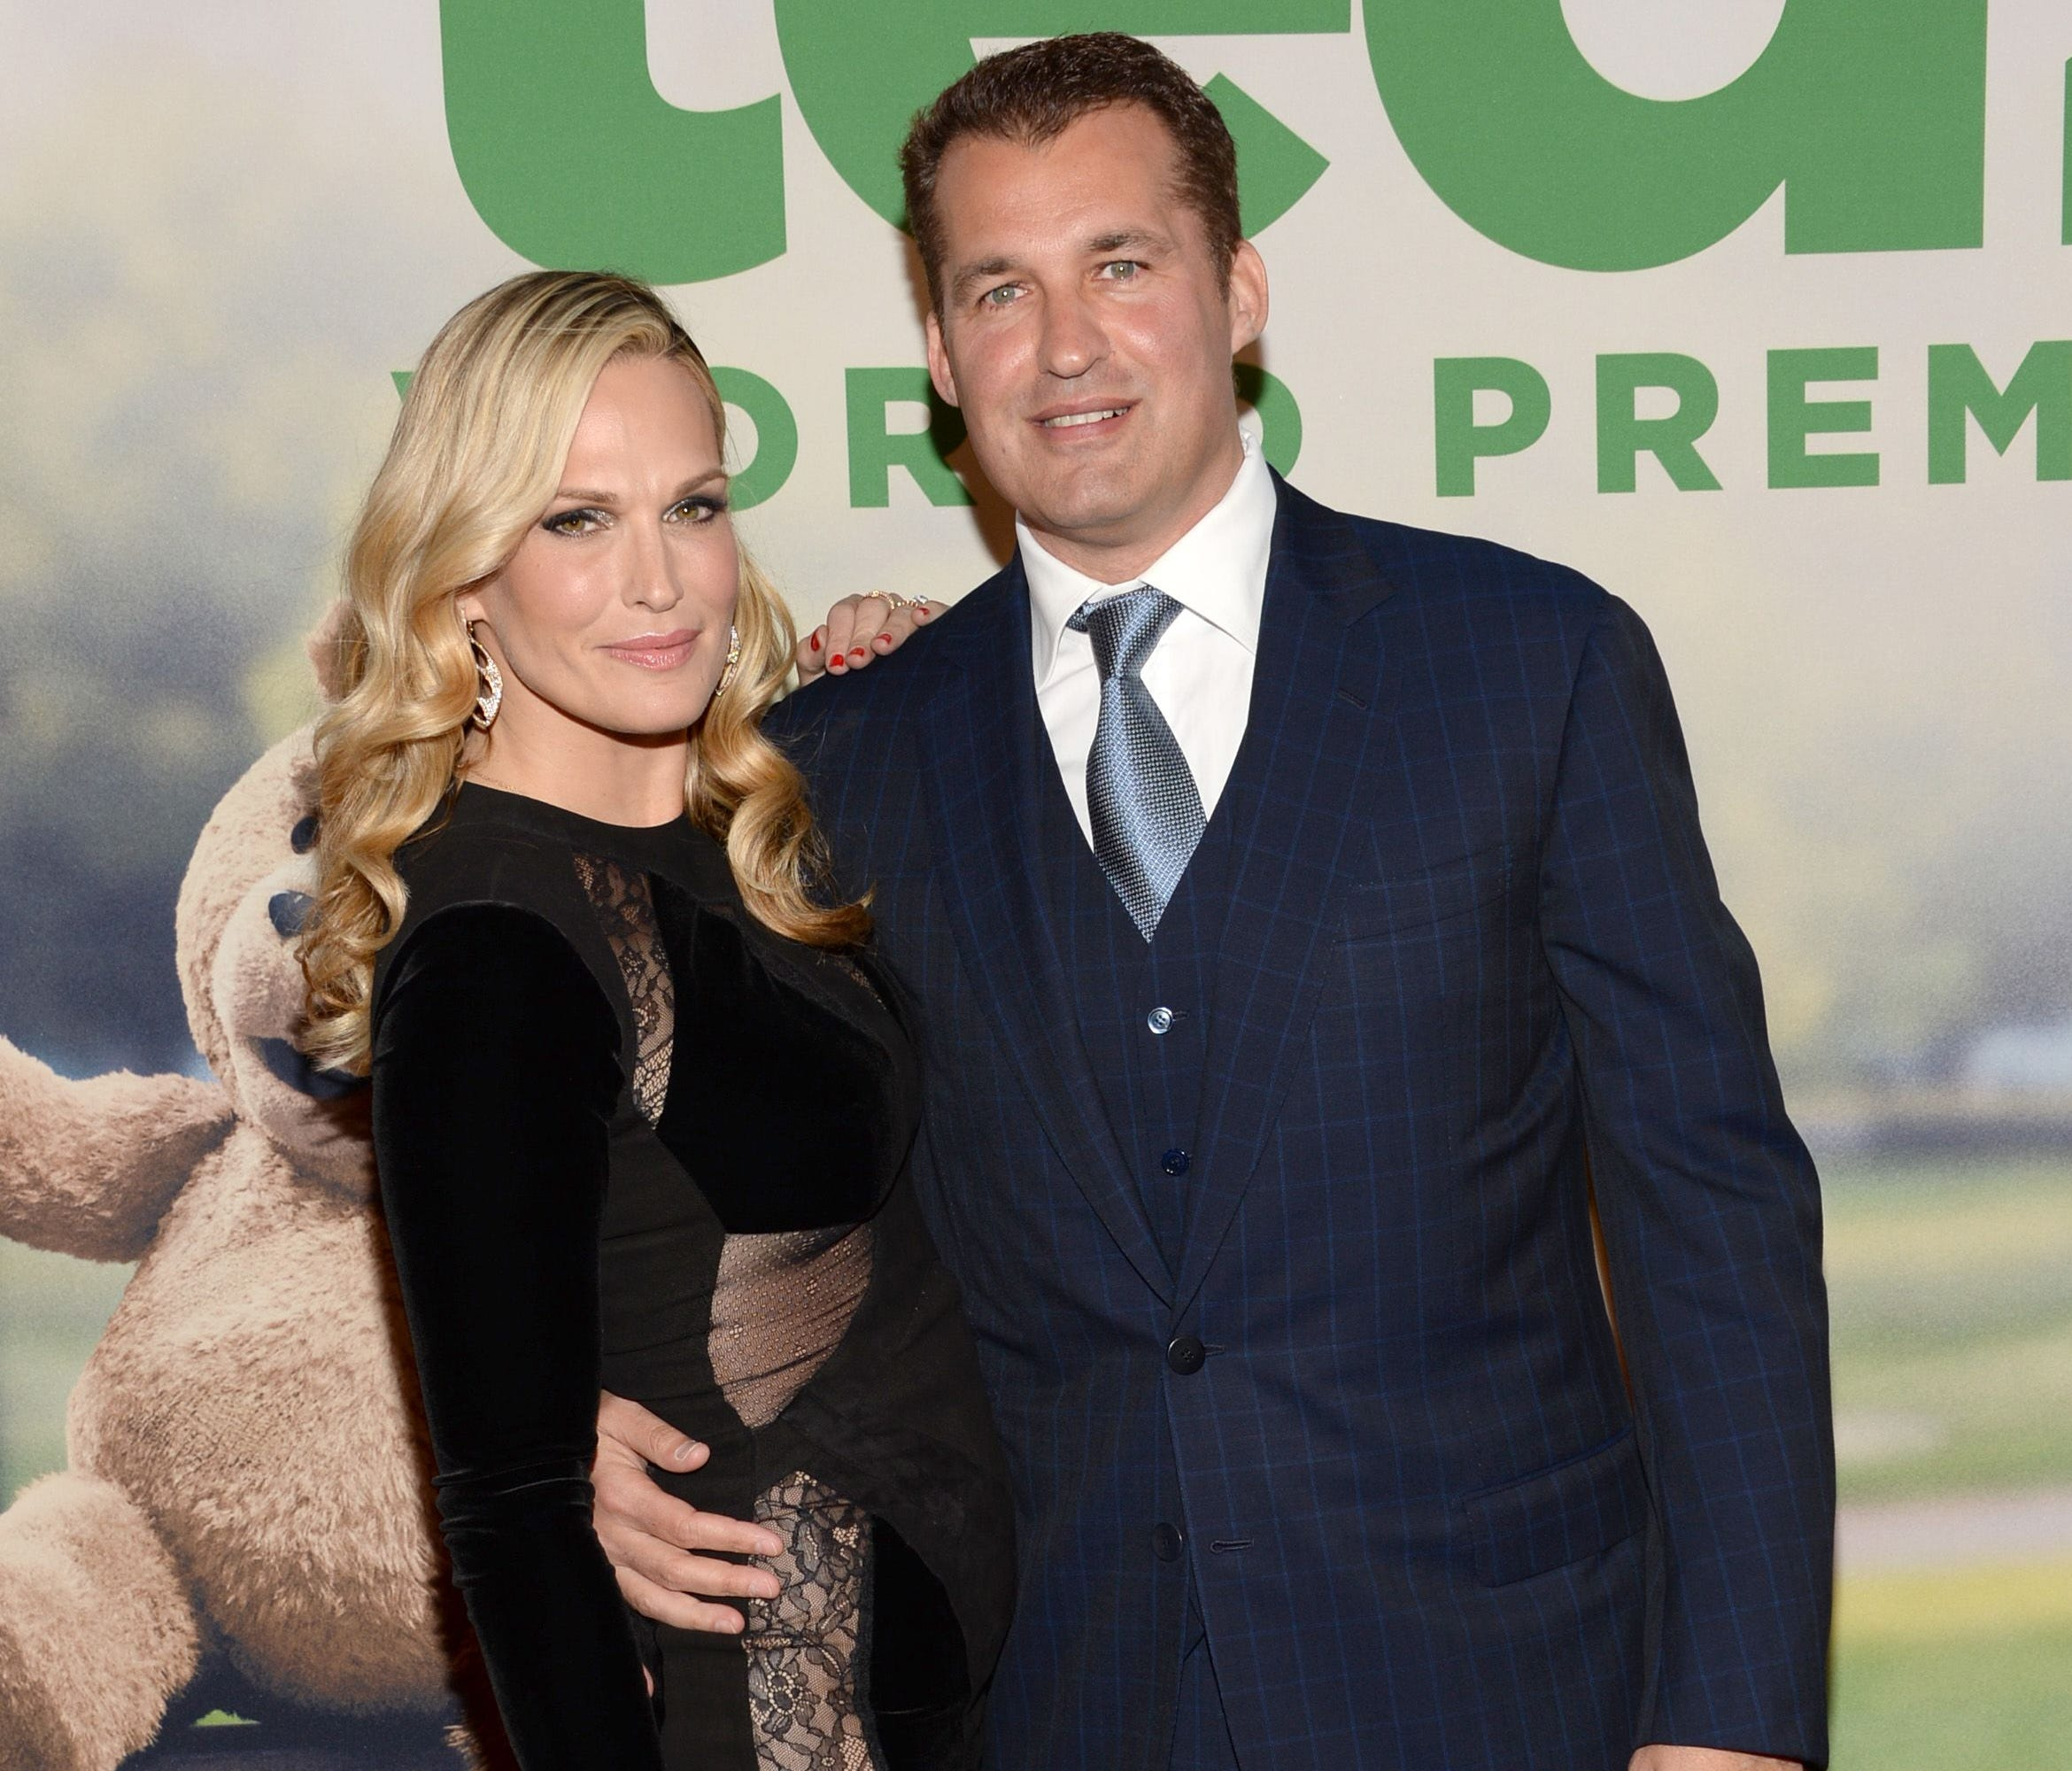 Molly Sims, left, and producer Scott Stuber attend the world premiere of